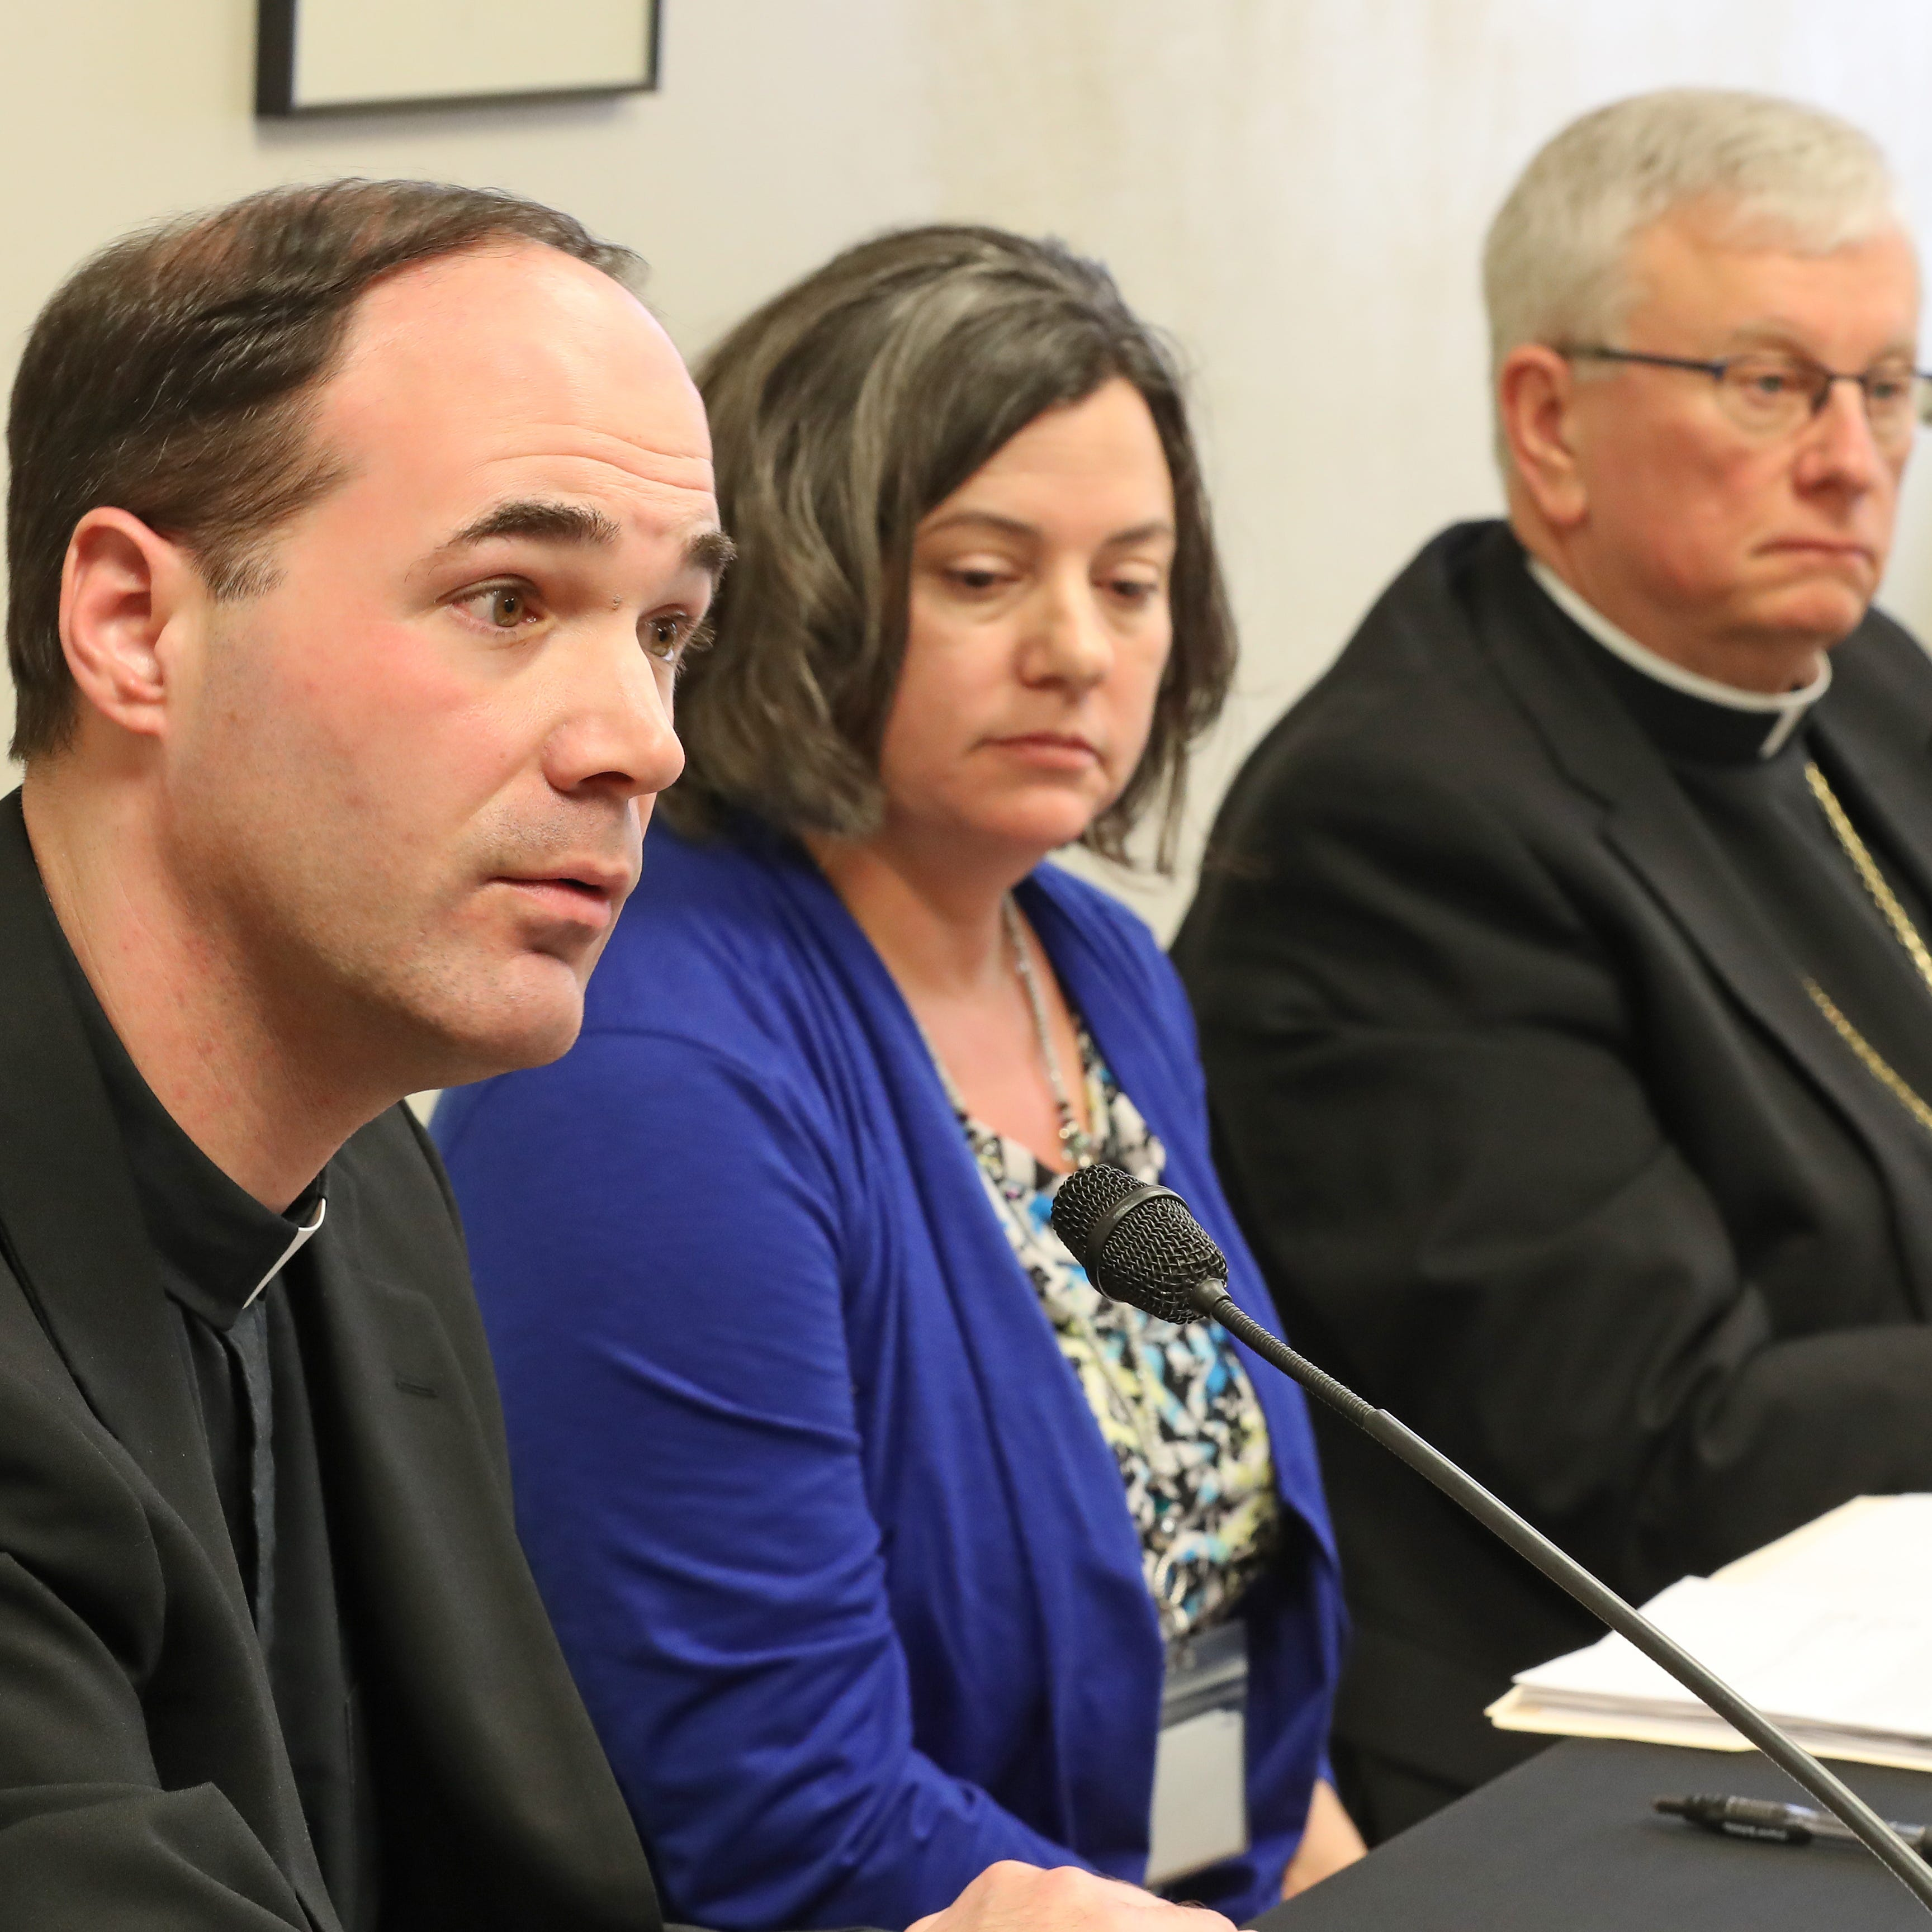 Green Bay diocese releases list of 46 priests it knows to have sexually abused minors since 1906